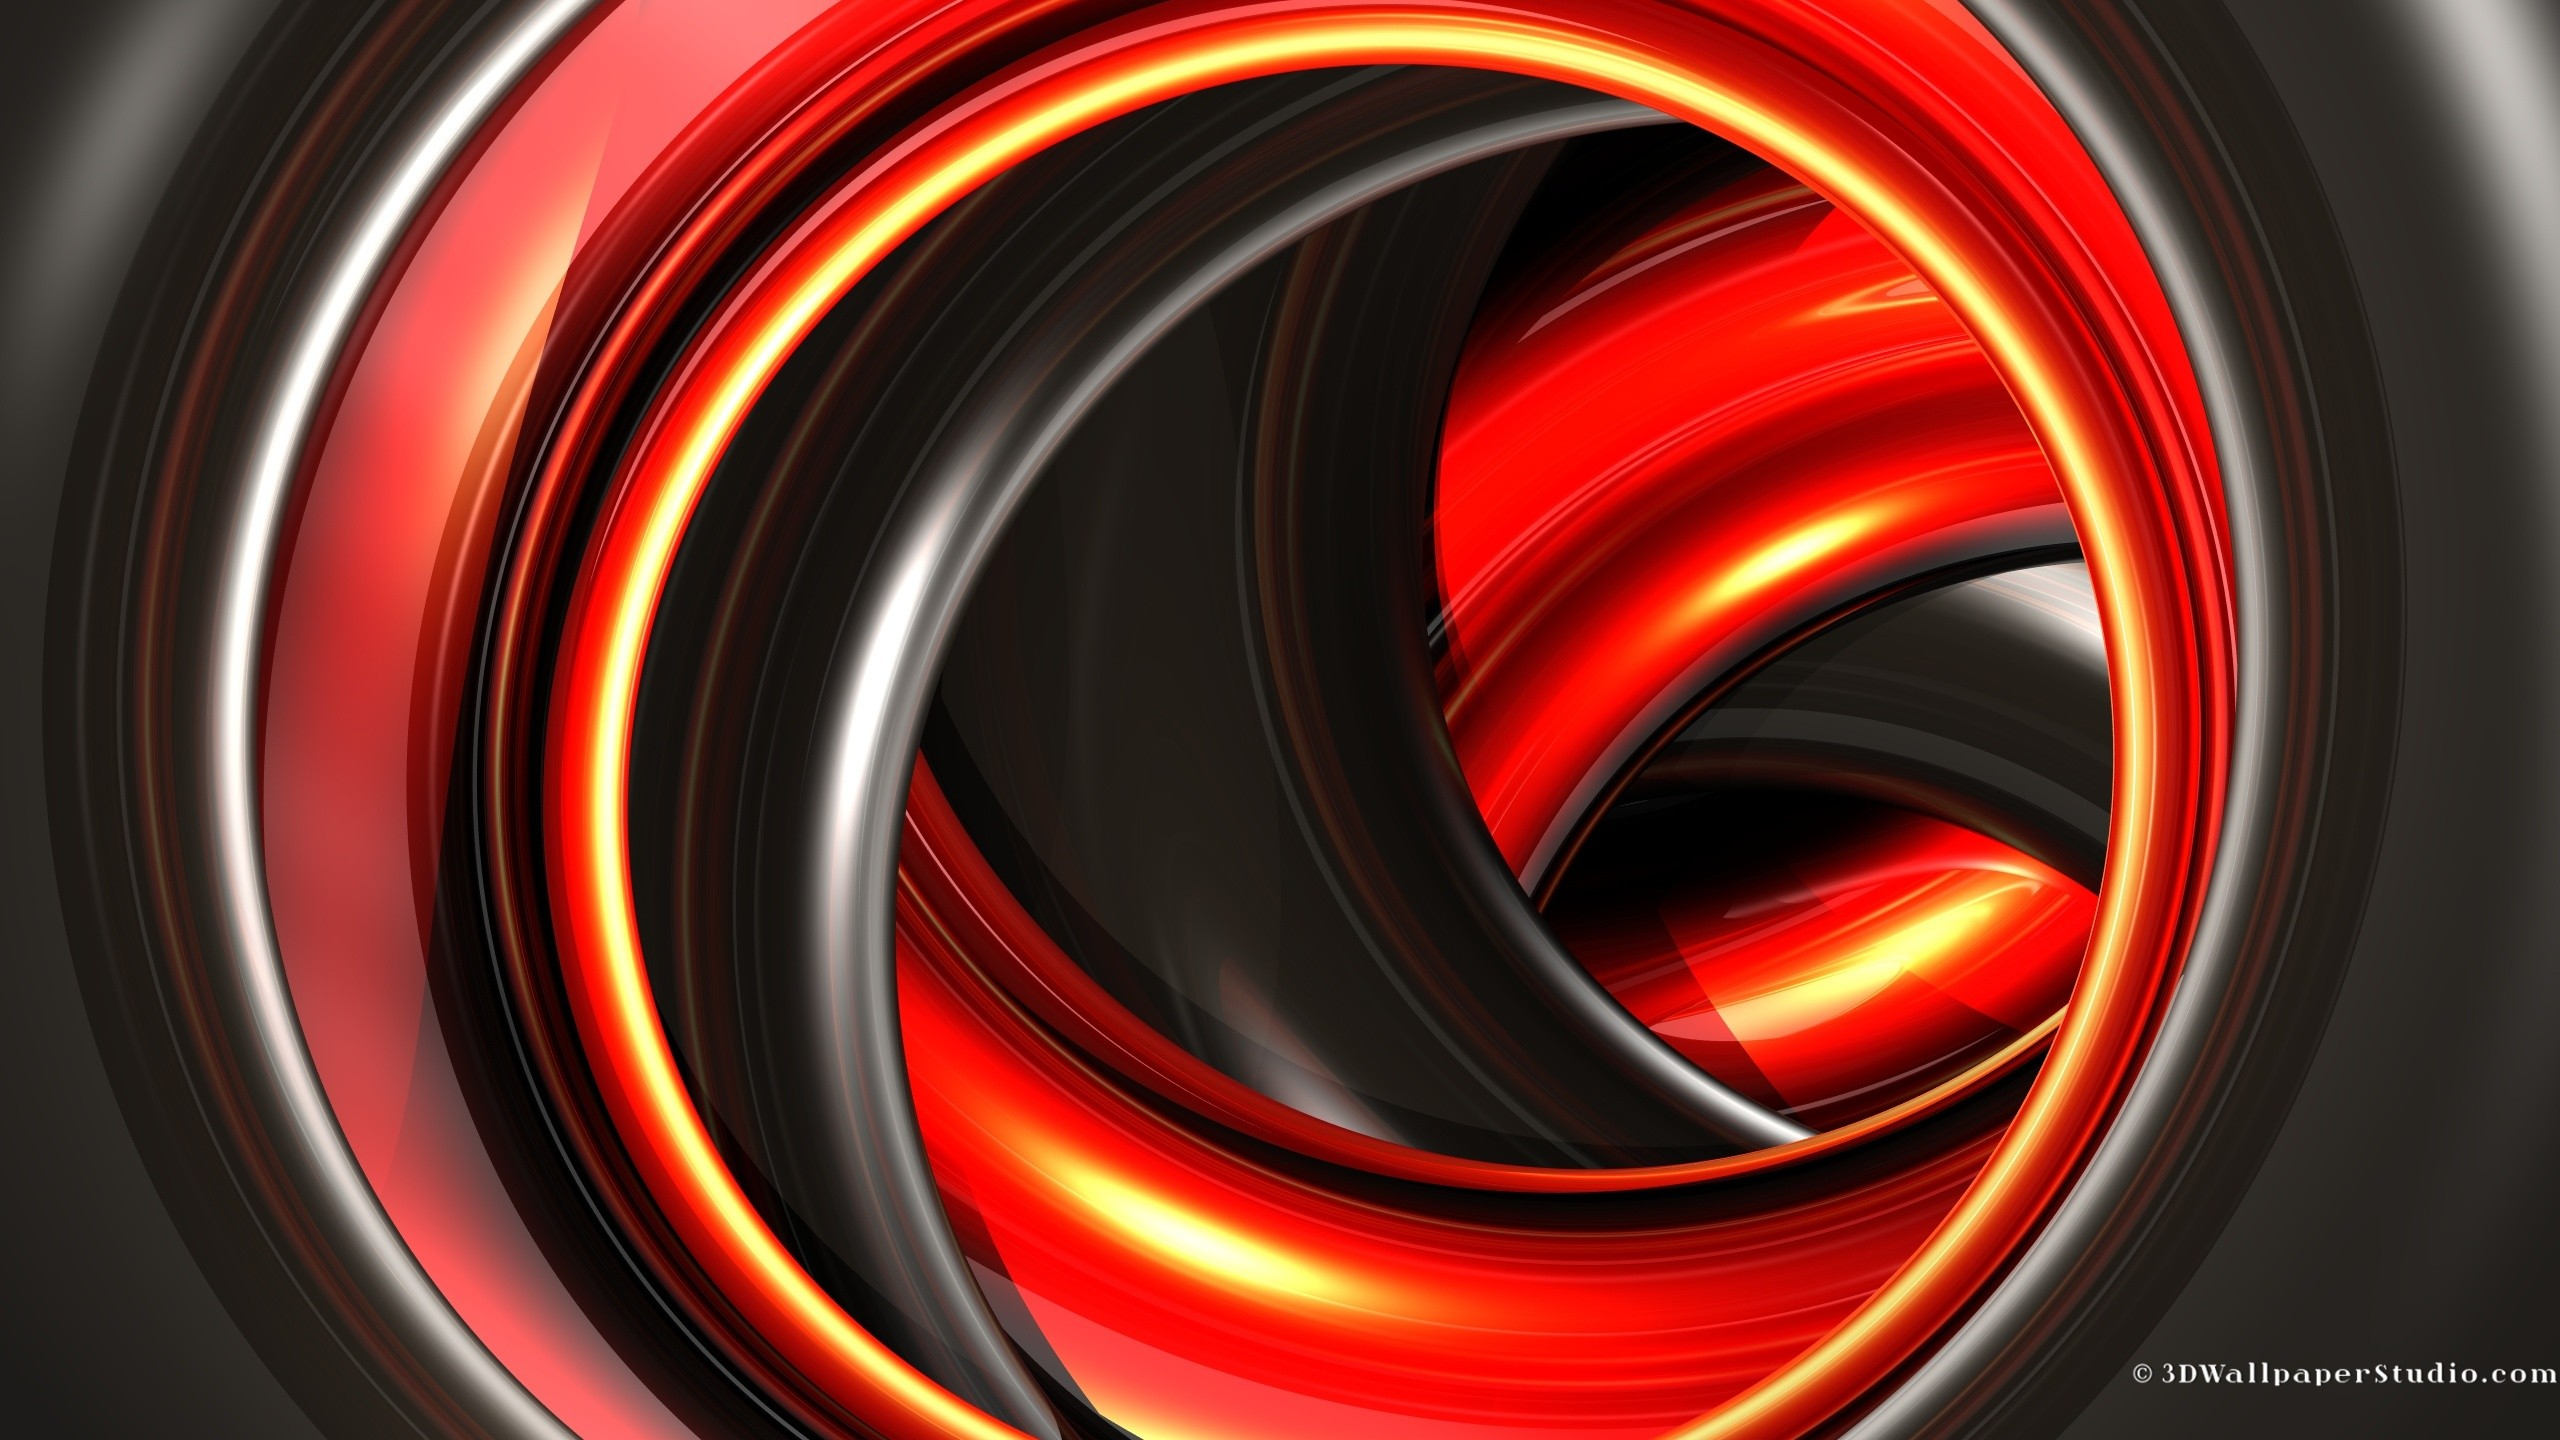 2560x1440 Black and red 3d abstract wallpaper in  screen resolution